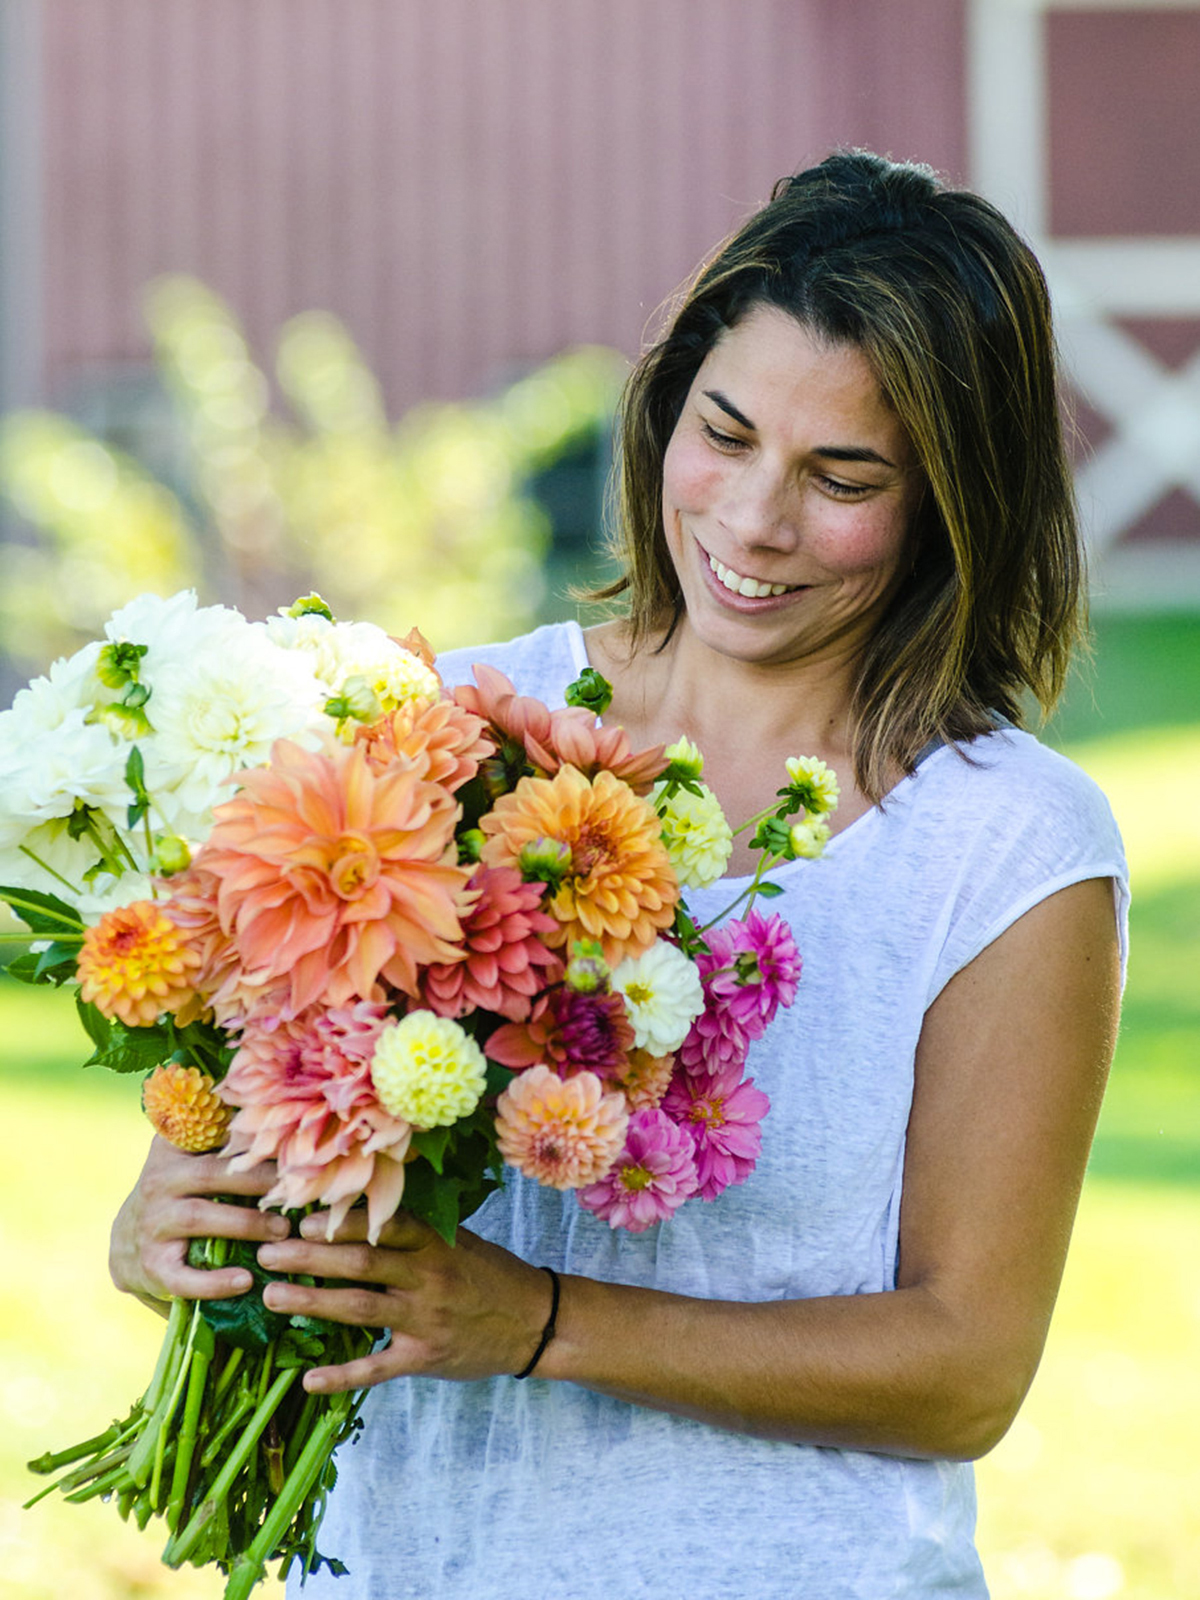 Mara with a bouquet of flowers from her farm (by Sue Reno)